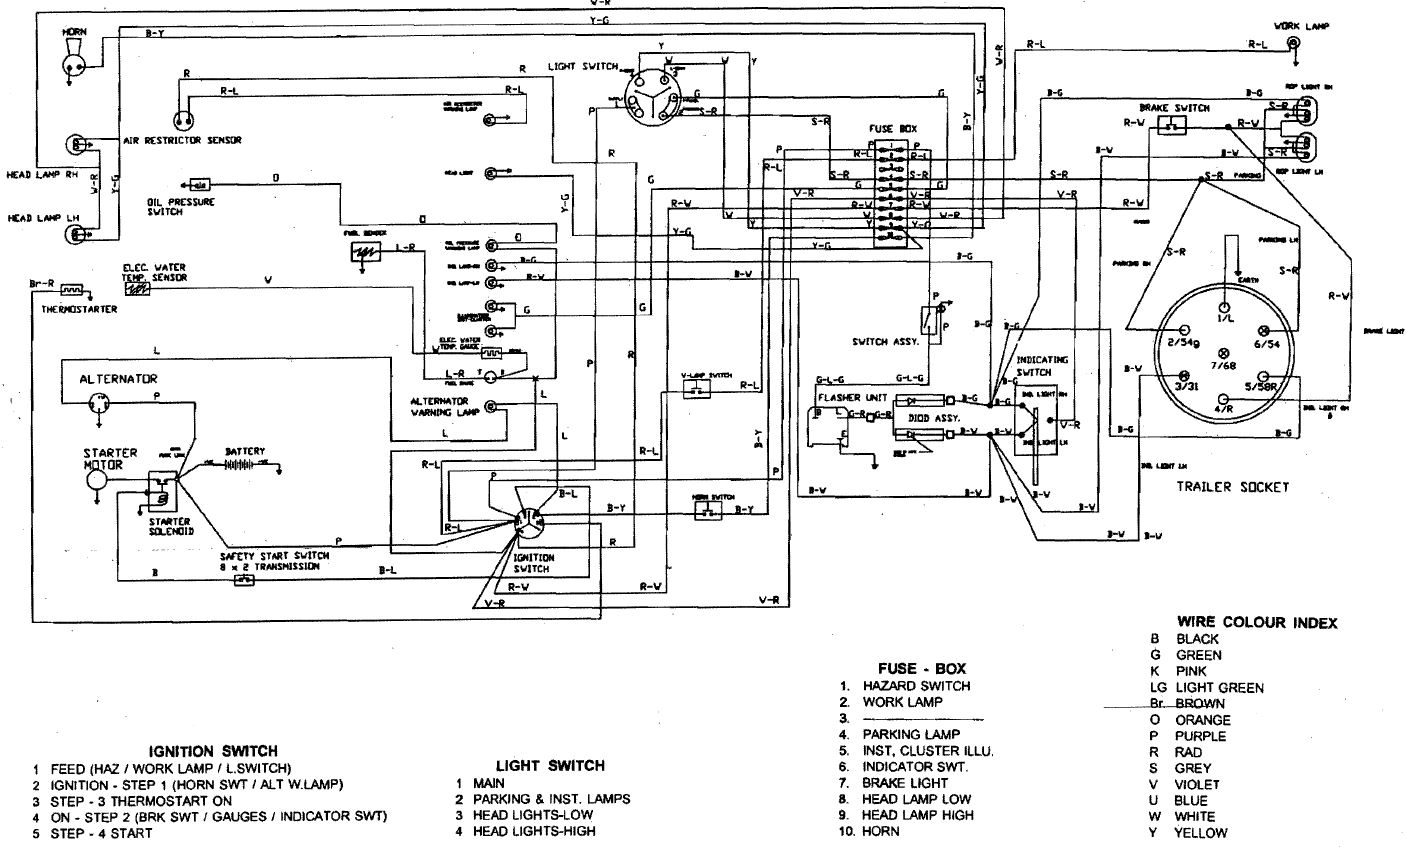 ignition switch wiring diagram Versatile Tractor Wiring Diagram ford tractor parts diagram